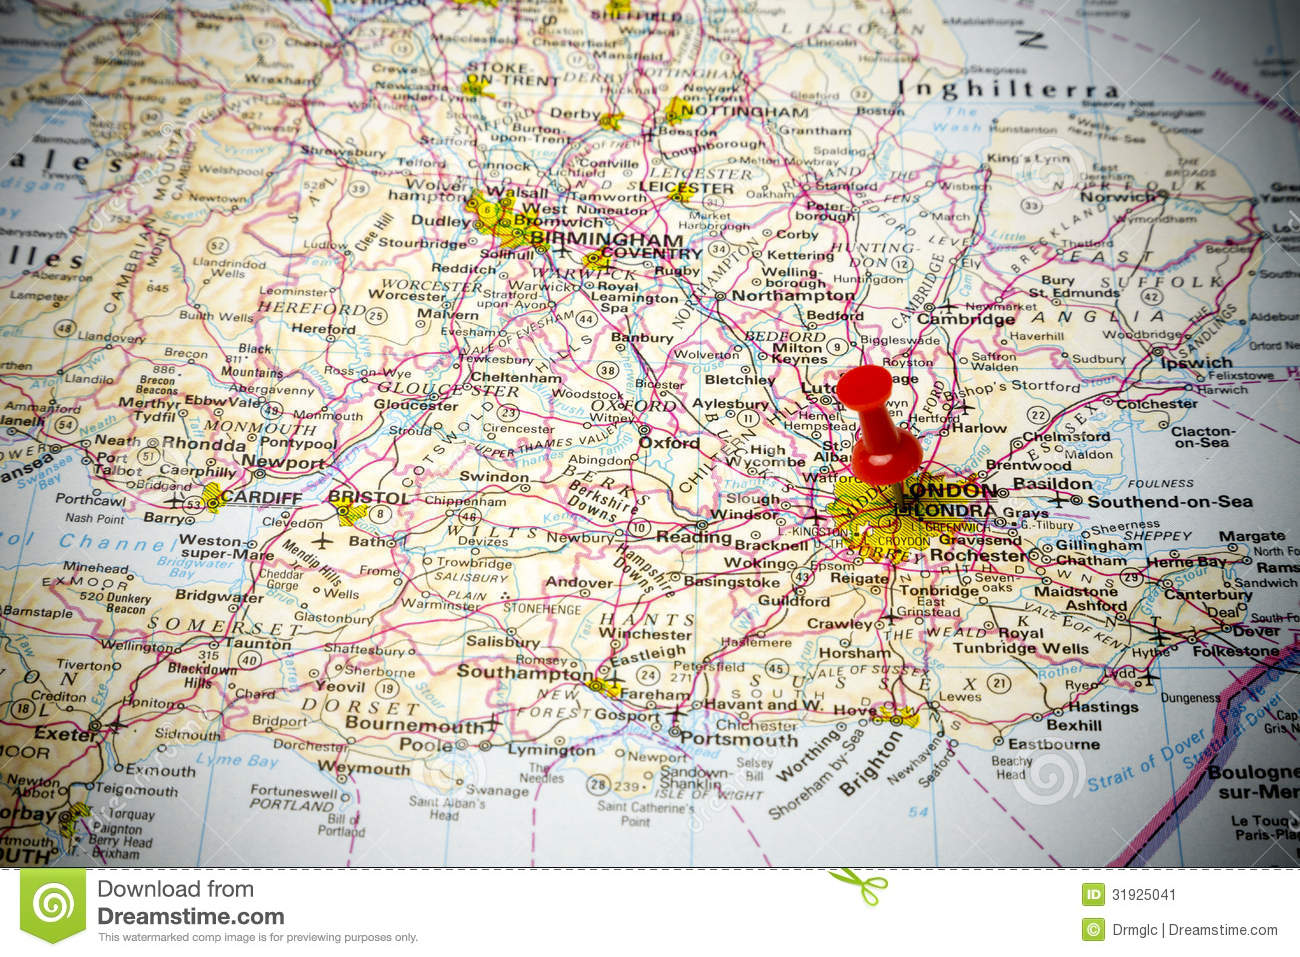 Road map stock image. Image of background, road, european - 31925041